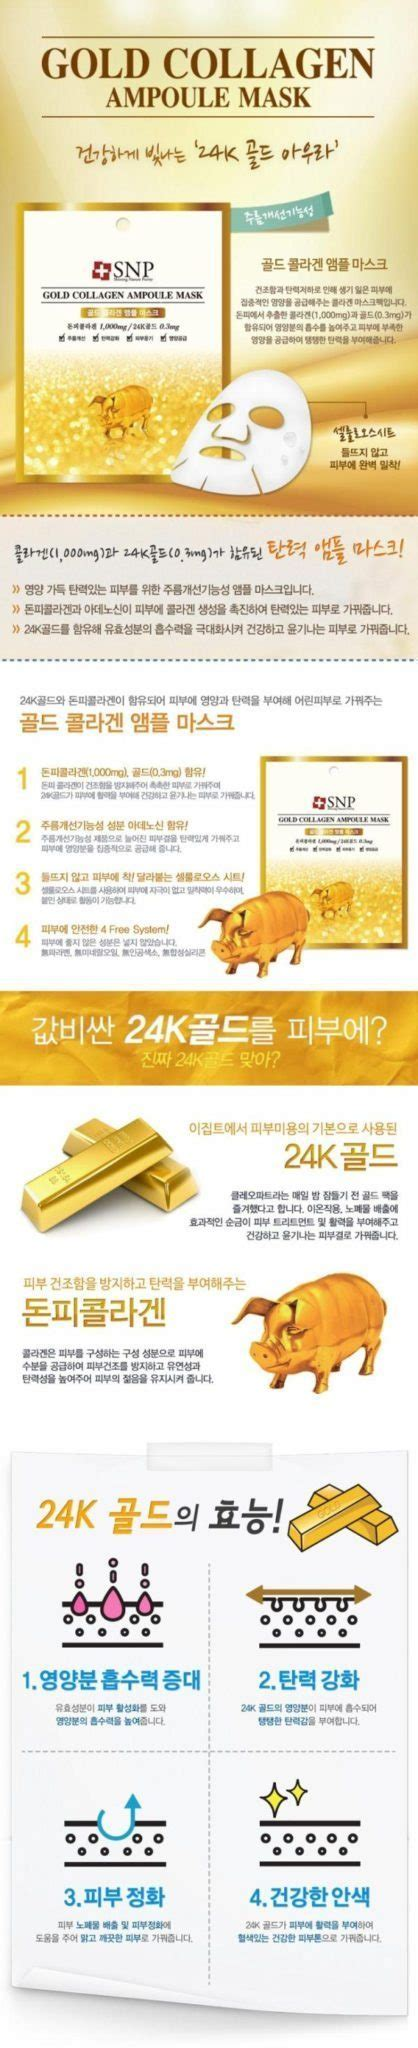 Collagen Indonesia snp gold collagen oule mask korean skincare shop malaysia